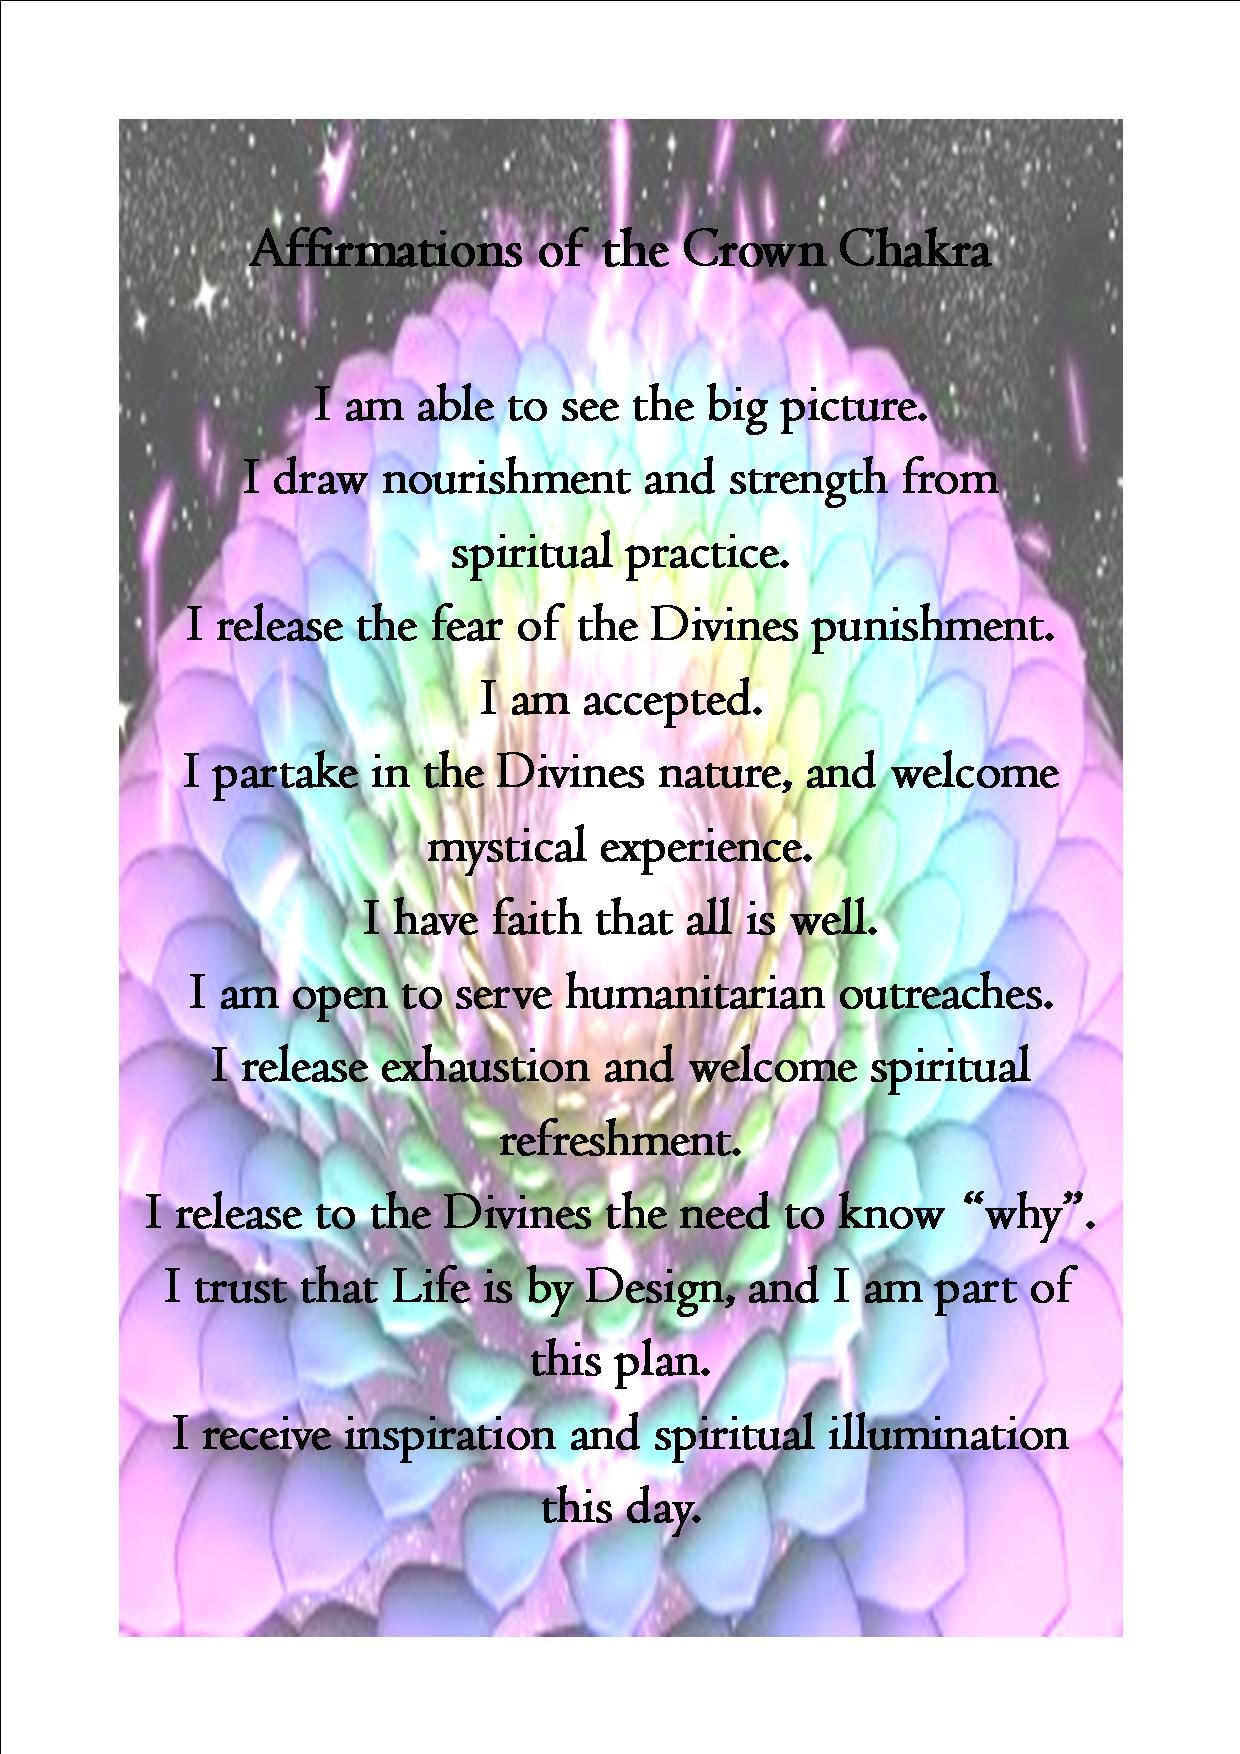 Crown Chakra Affirmations: Pic and words found online. balancedwomens.com